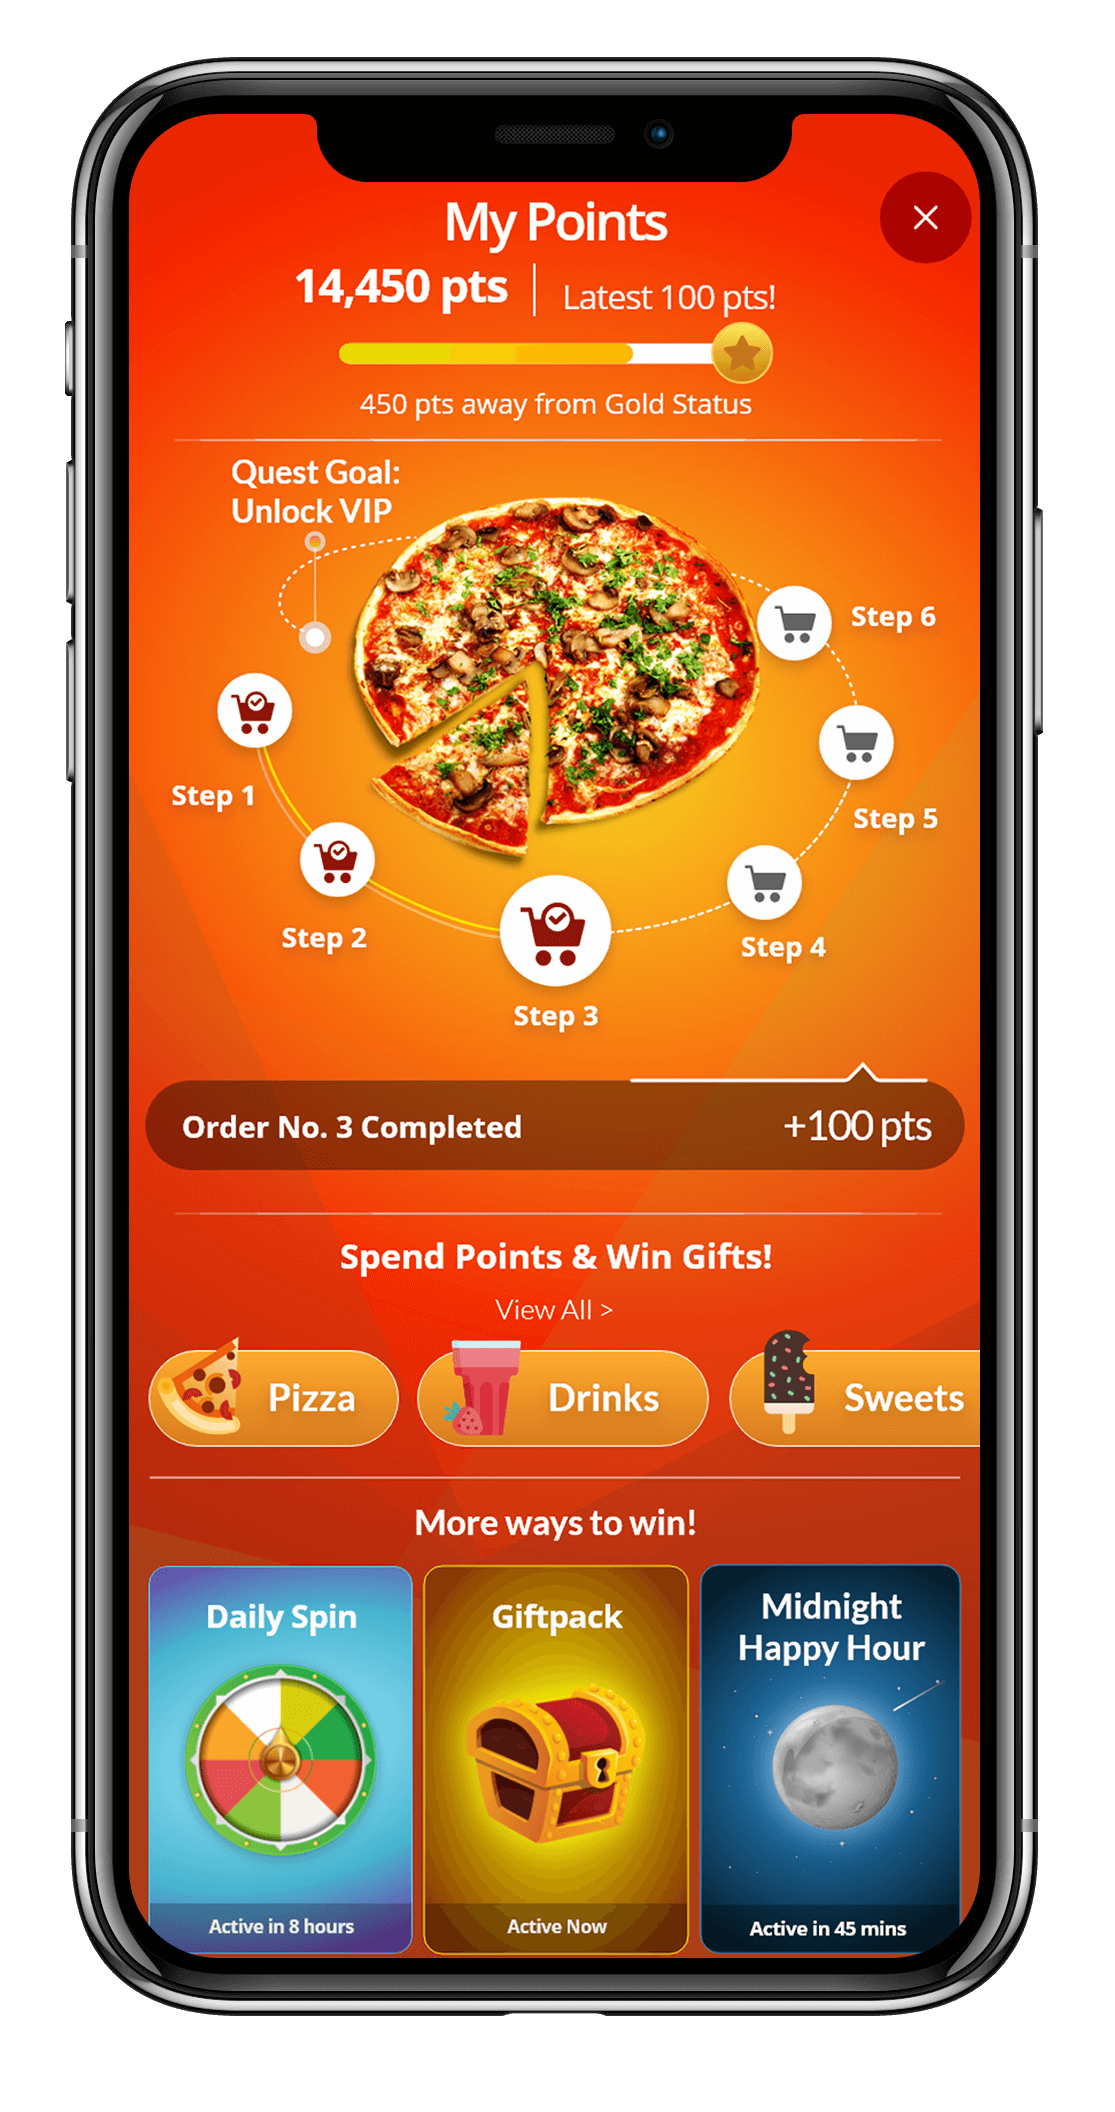 wappier Loyalty Automation for Food and Restaurants - Quest Feature